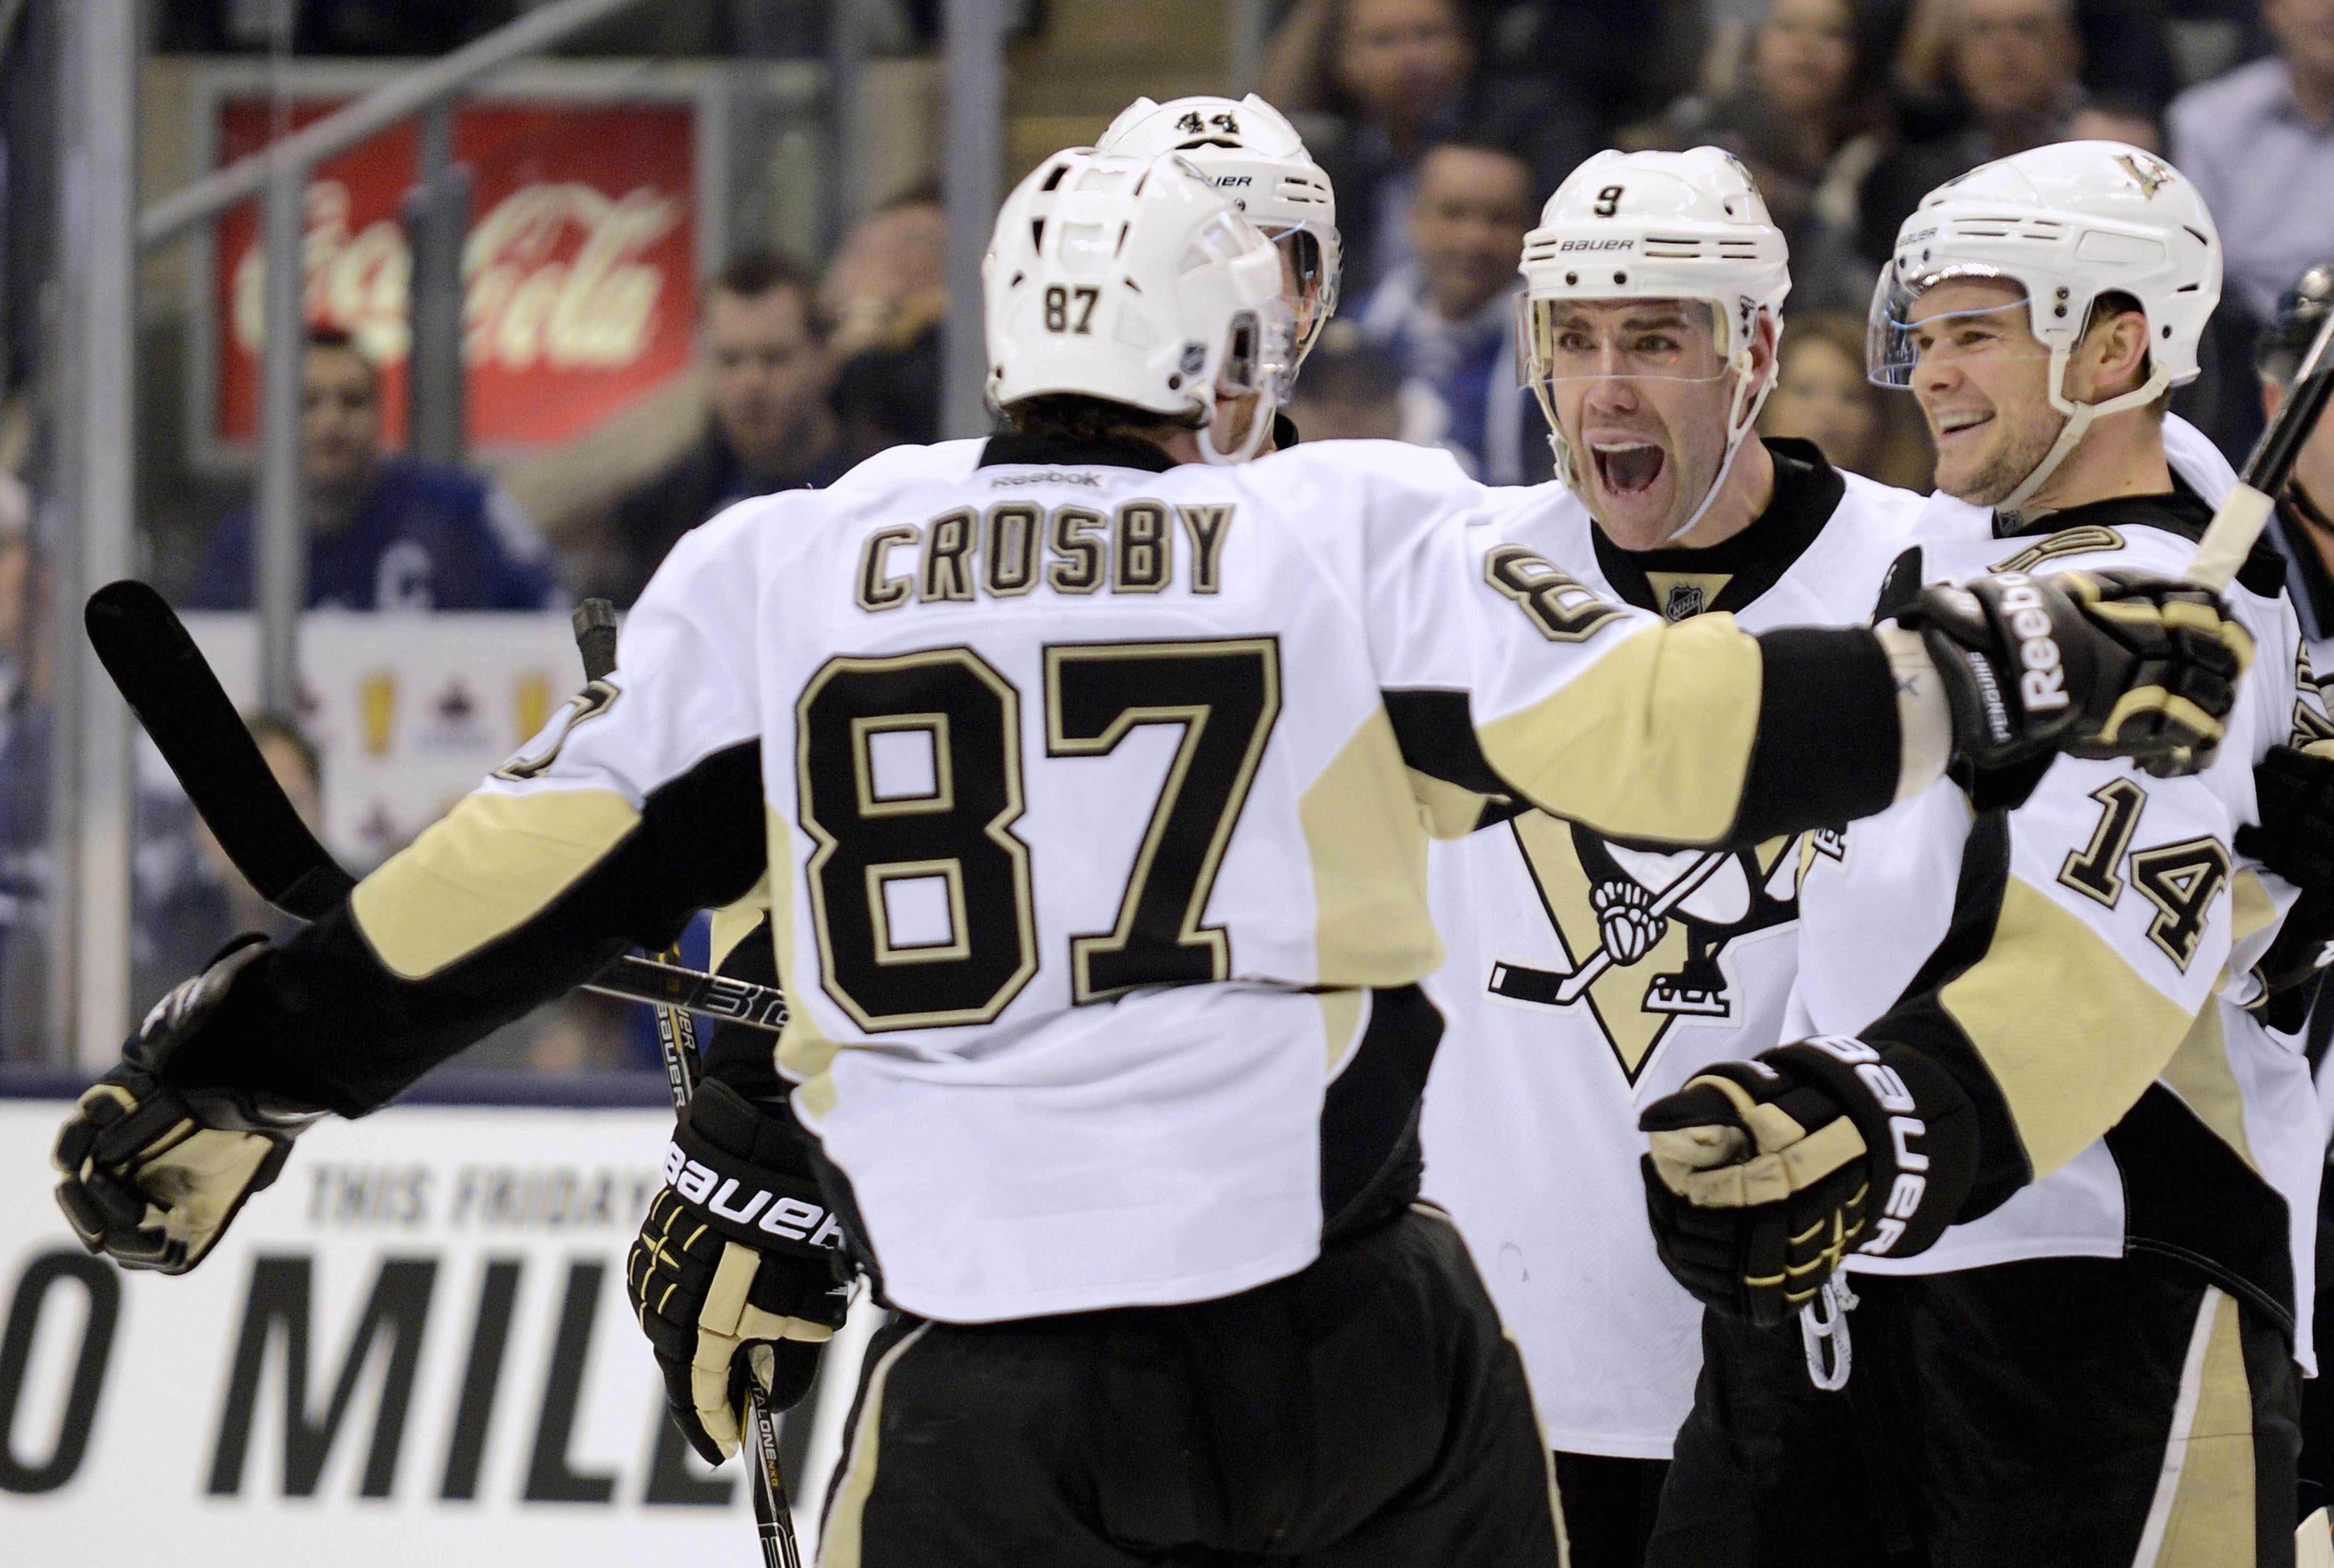 Sidney Crosby knows to make his linemates smile. (Reuters)